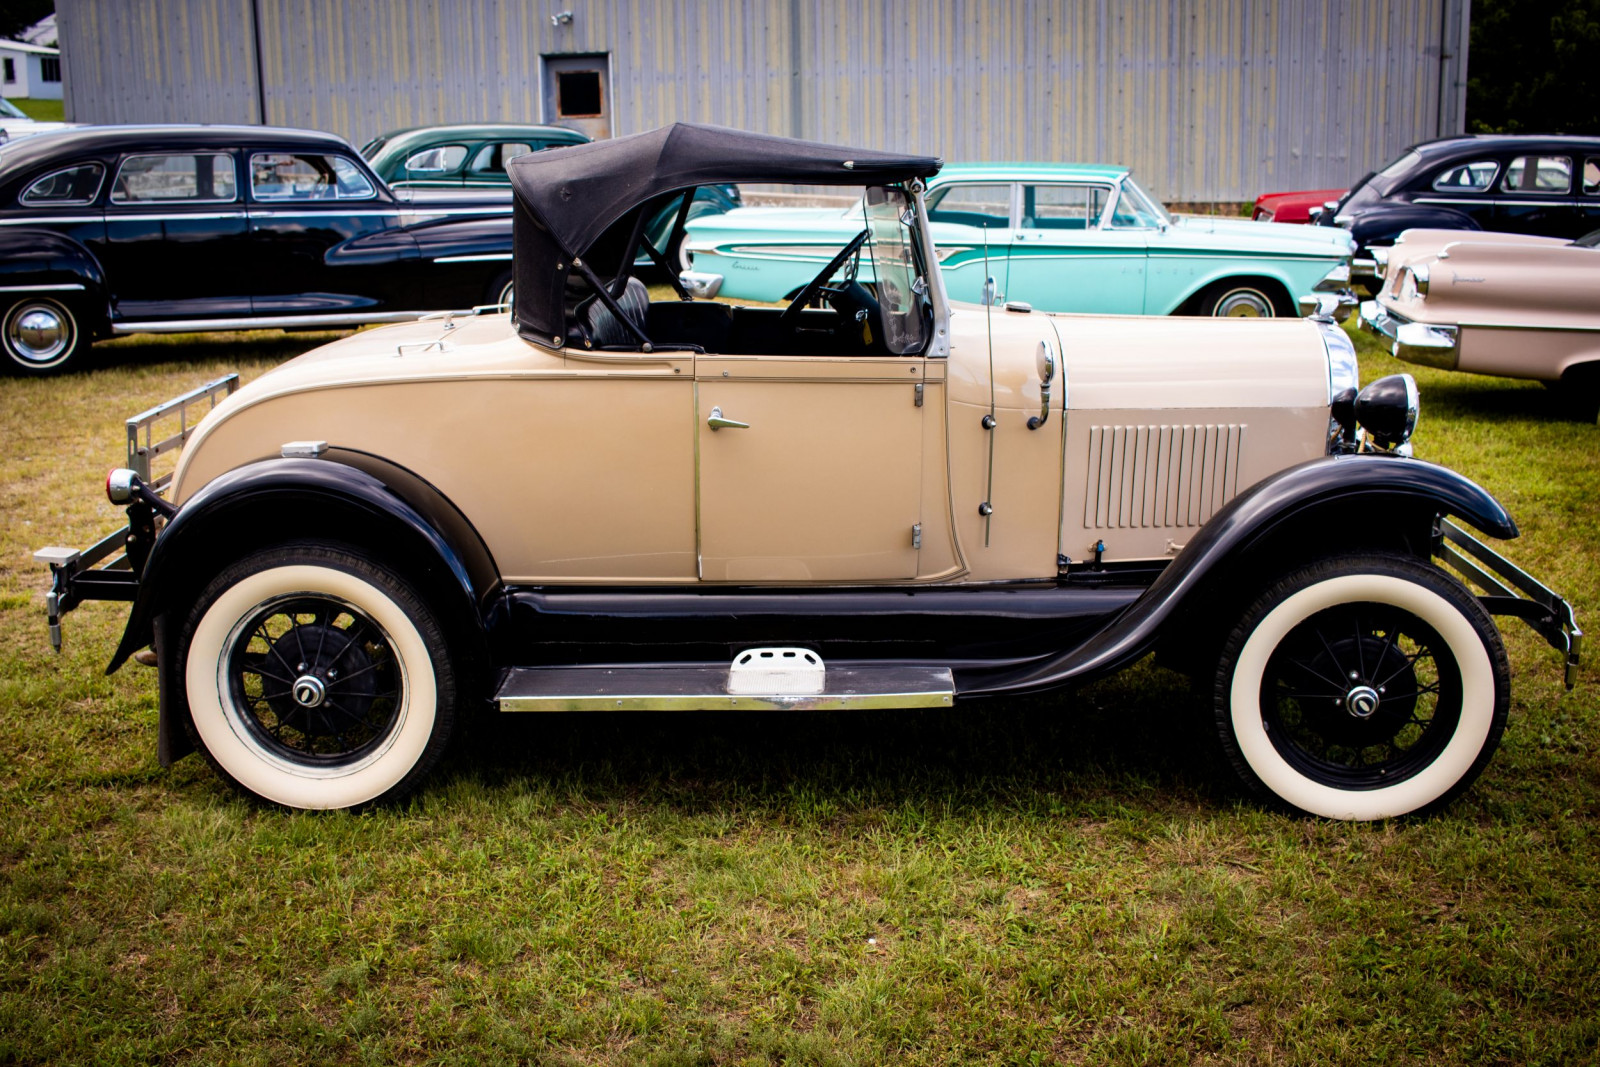 1980 Shay Model A Roadster - Image 4